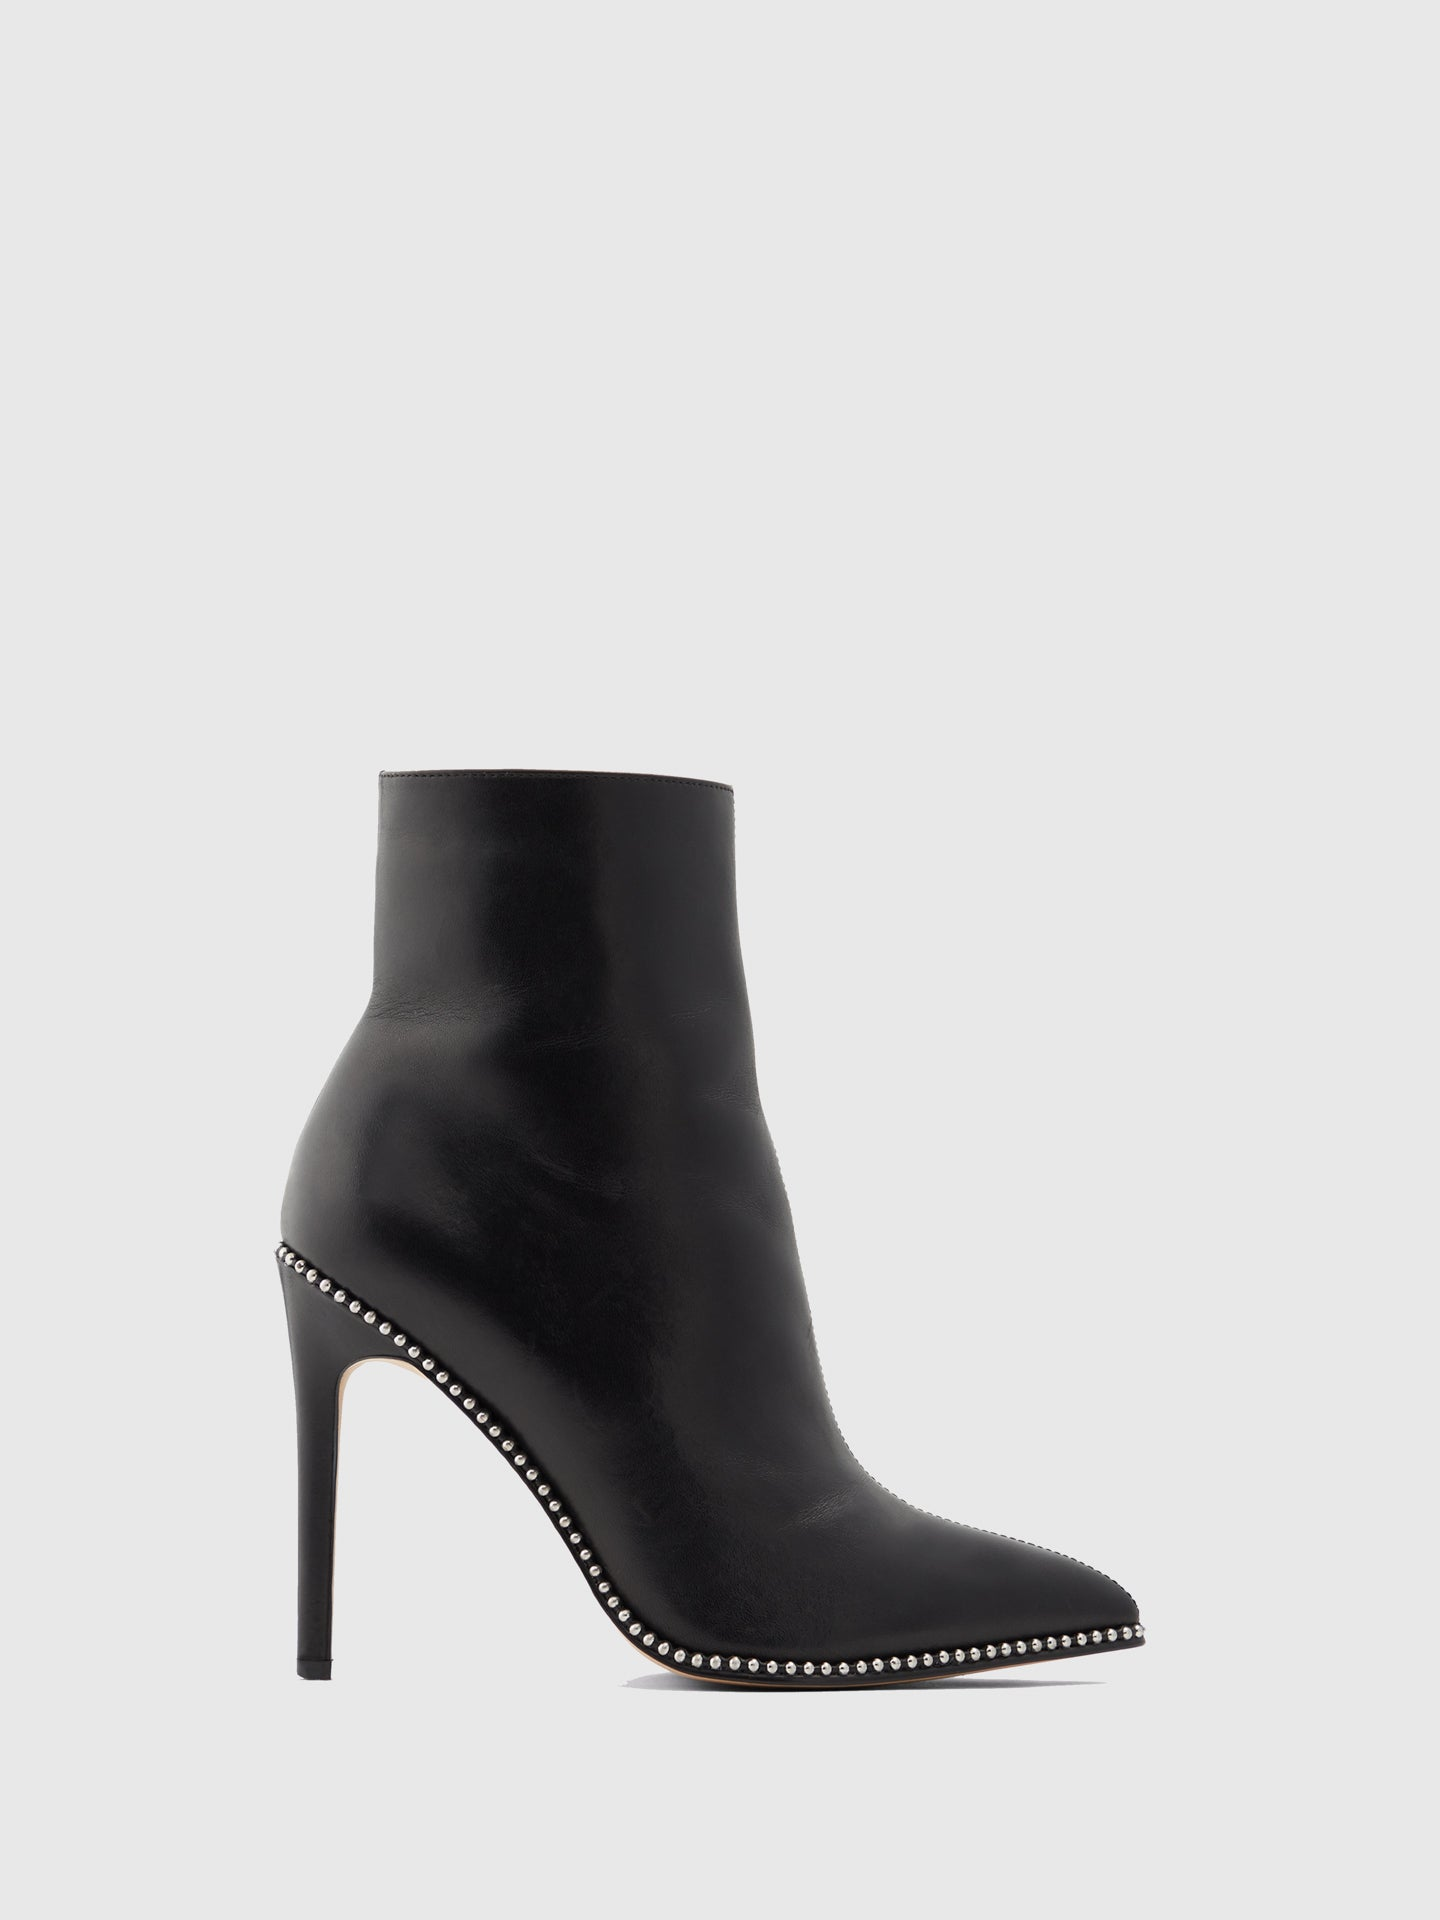 Aldo Black Leather Stiletto Ankle Boots